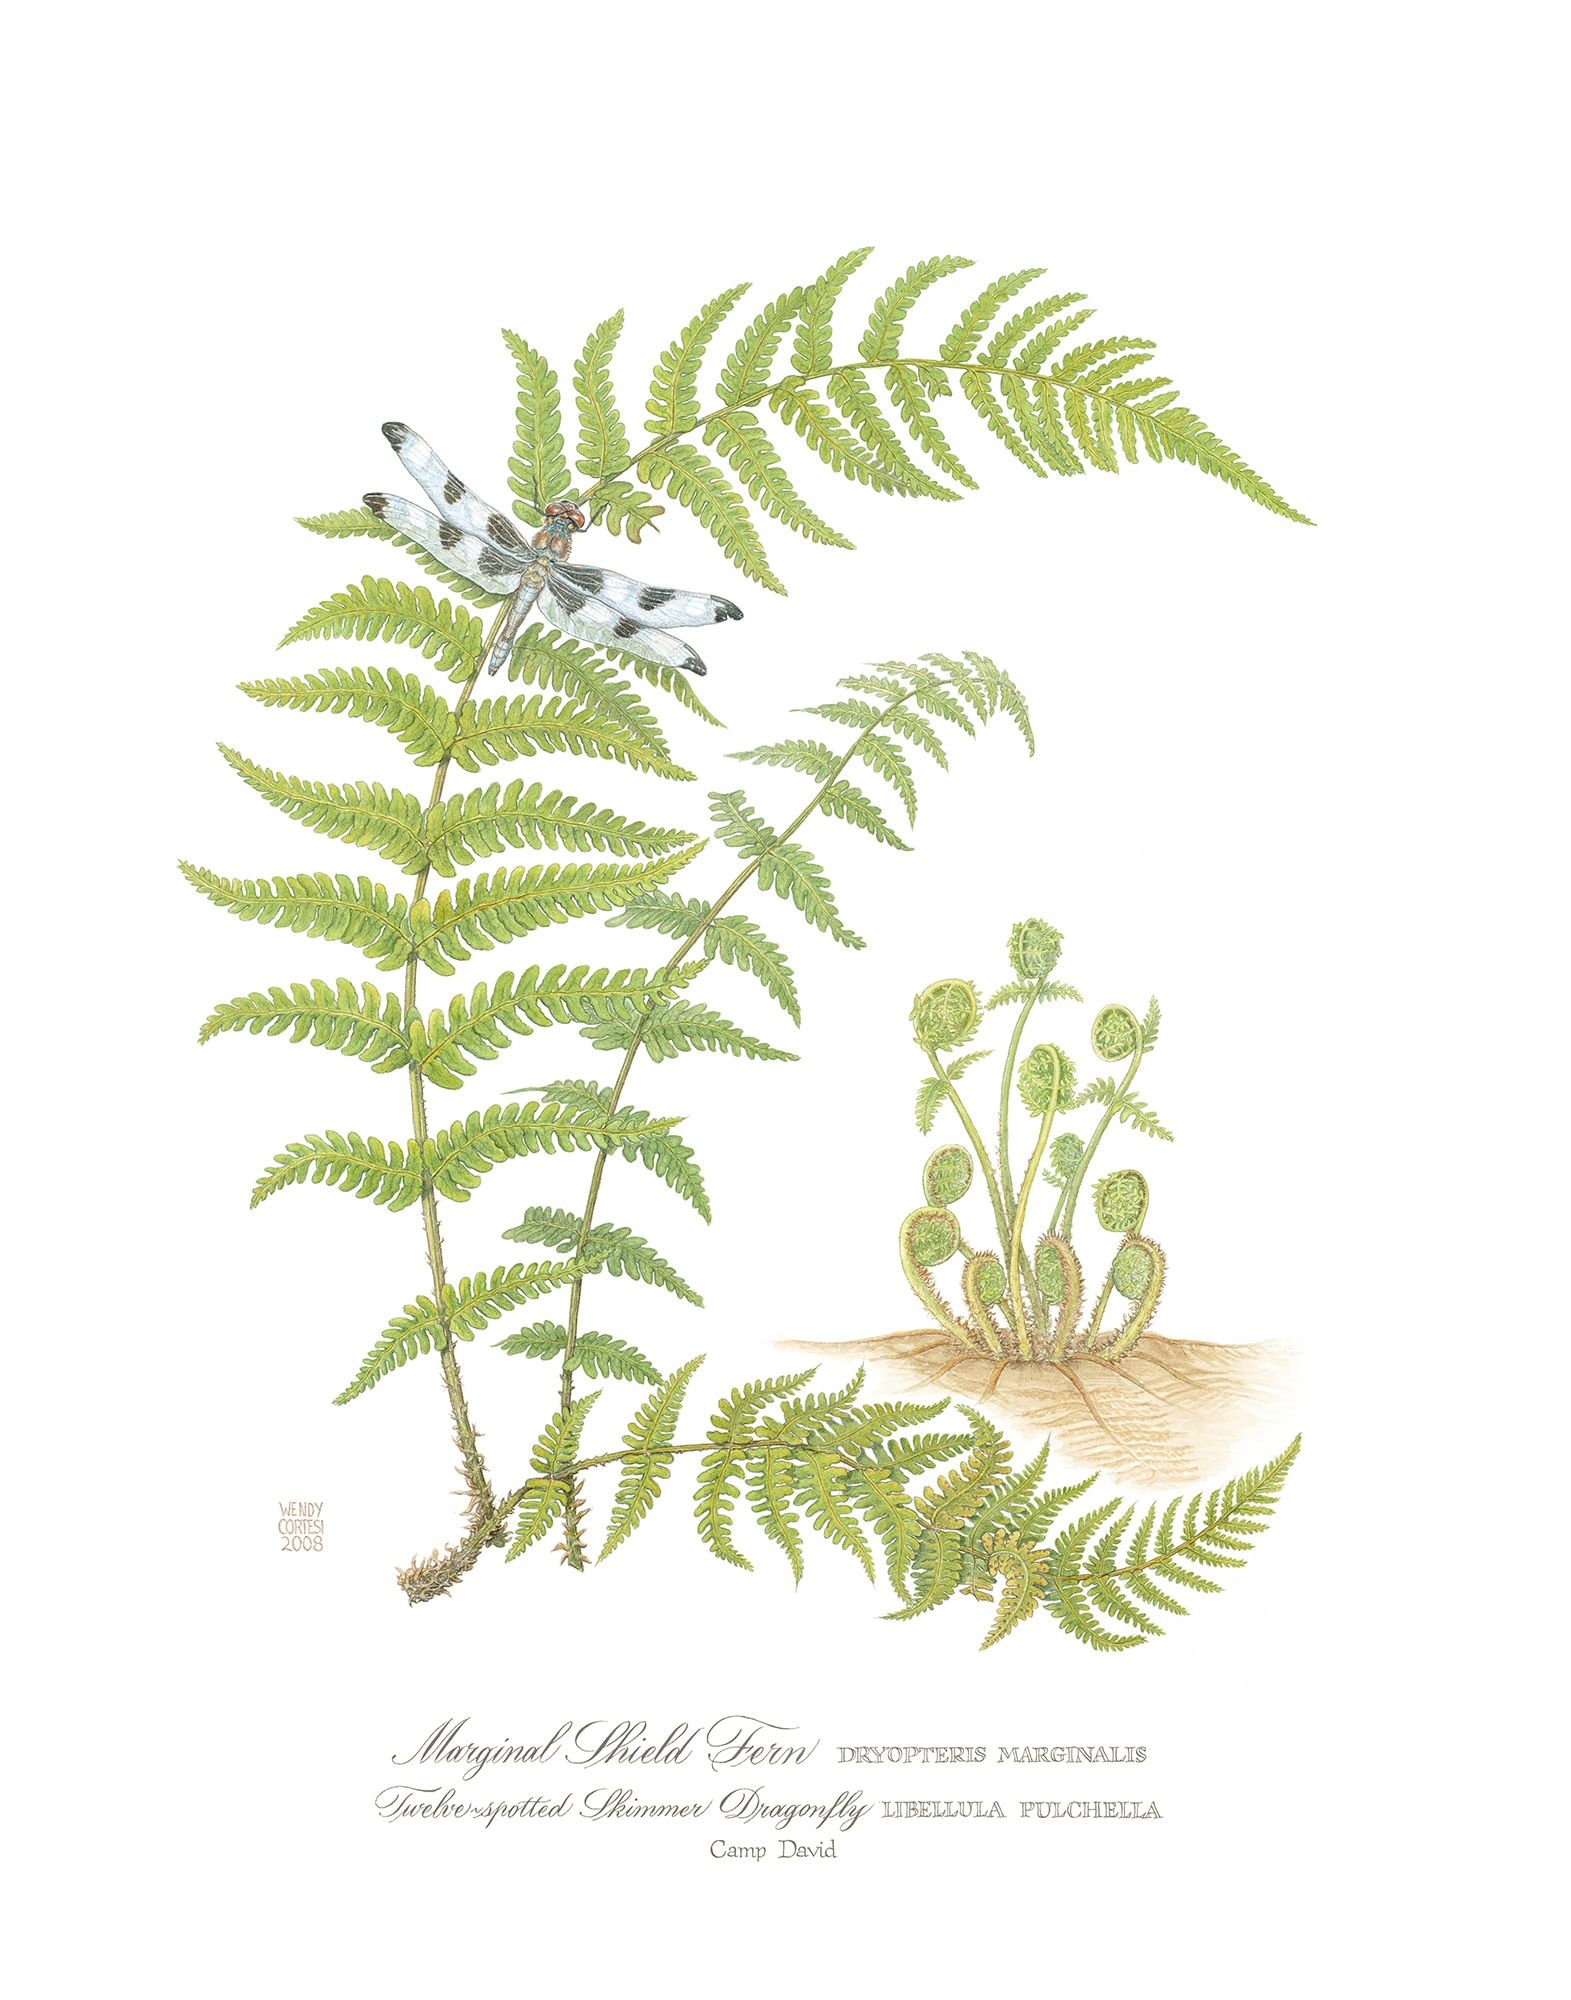 Wendy Cortesi's Marginal Shield Fern